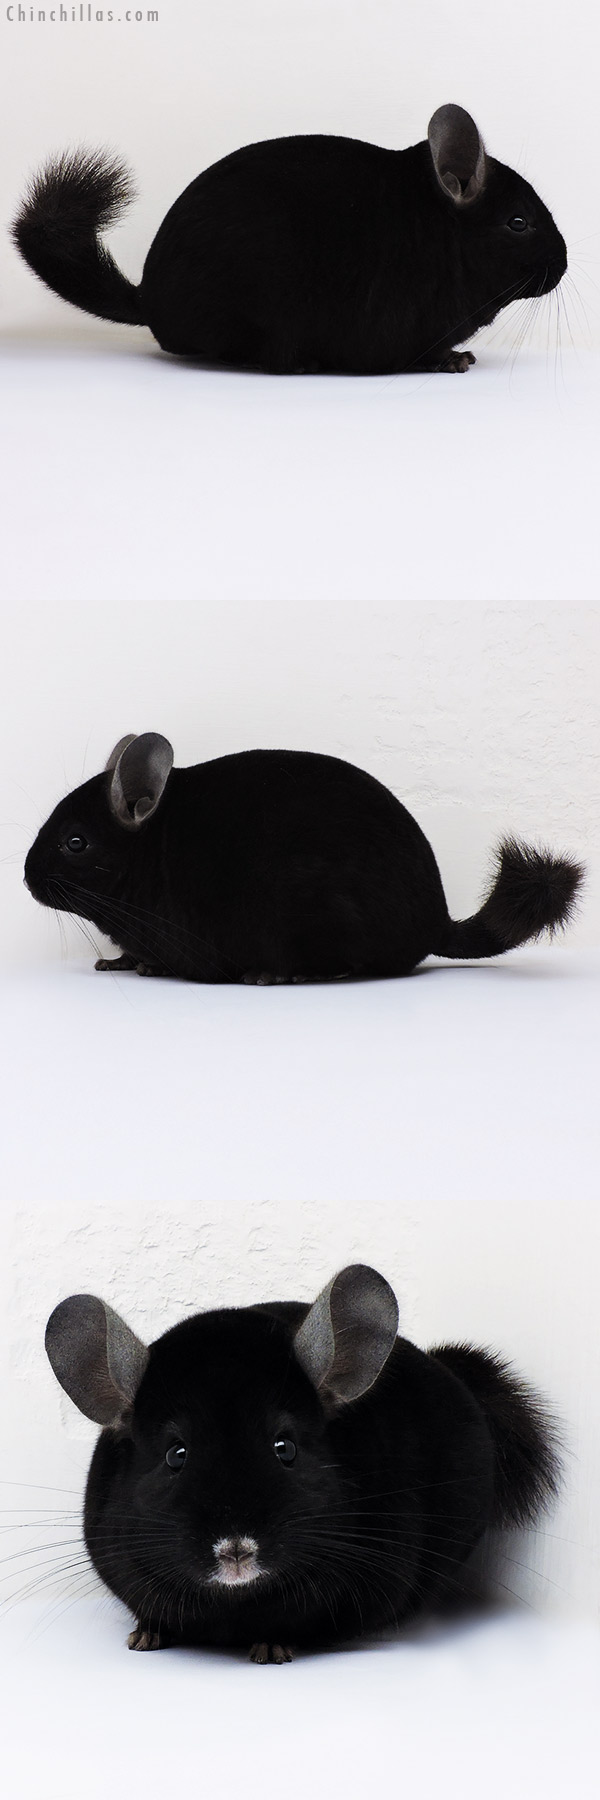 16215 Herd Improvement Quality Ebony Male Chinchilla